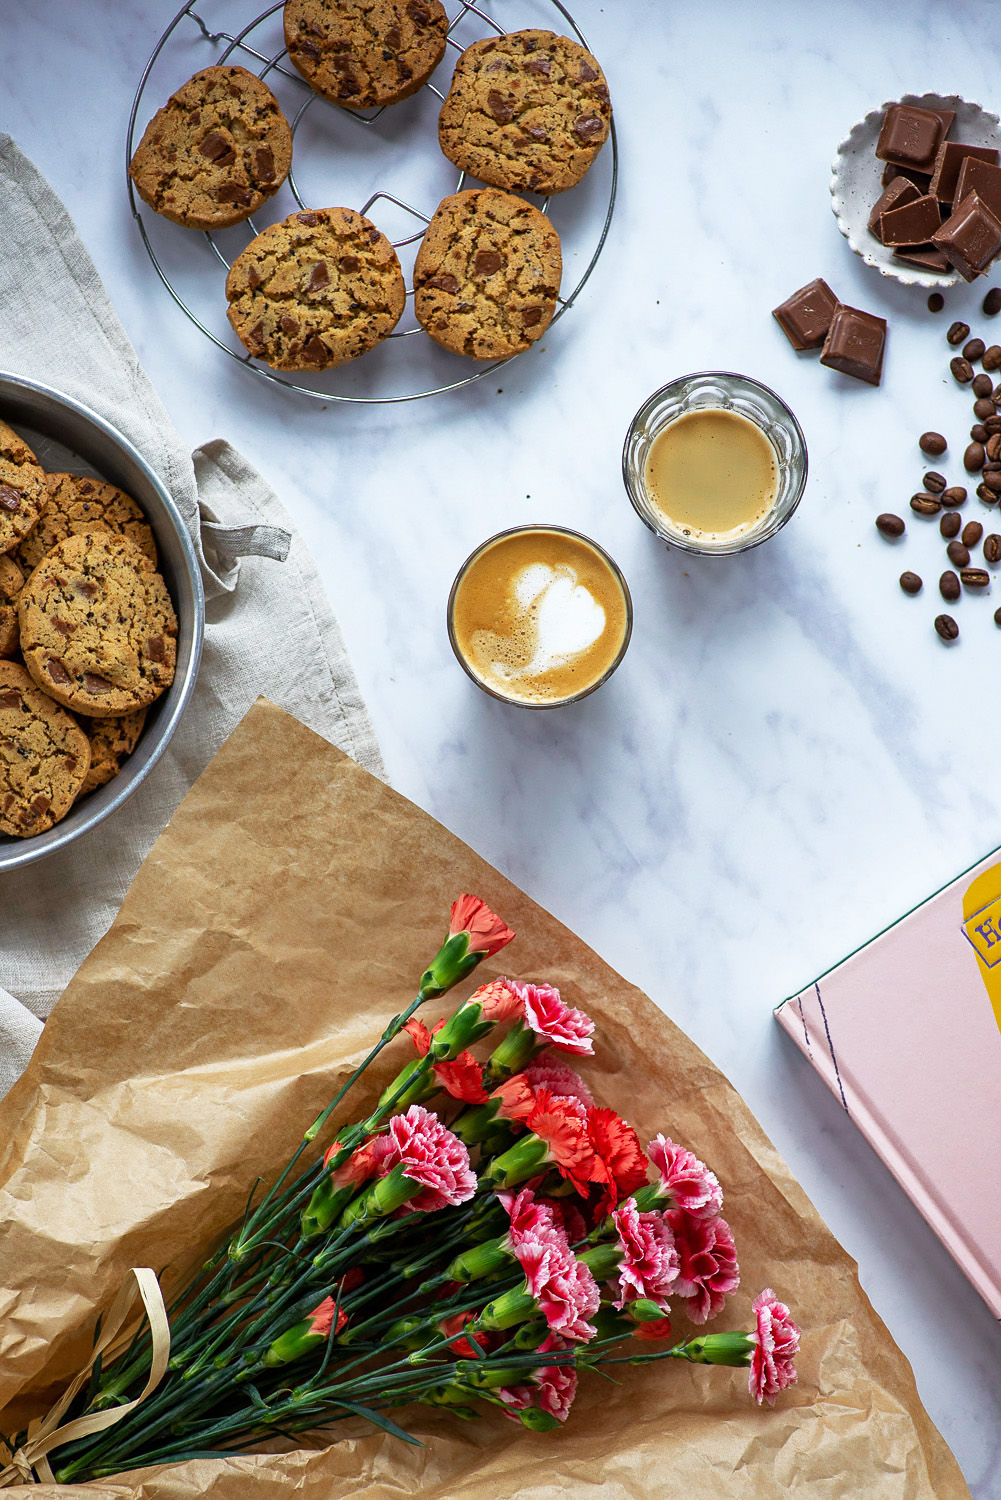 """Chocolate Chip Cookies with Coffee Beans featured in """"At Home – Middle Eastern recipes from our kitchen"""", a cookbook by Itamar Srulovich and Sarit Packer."""